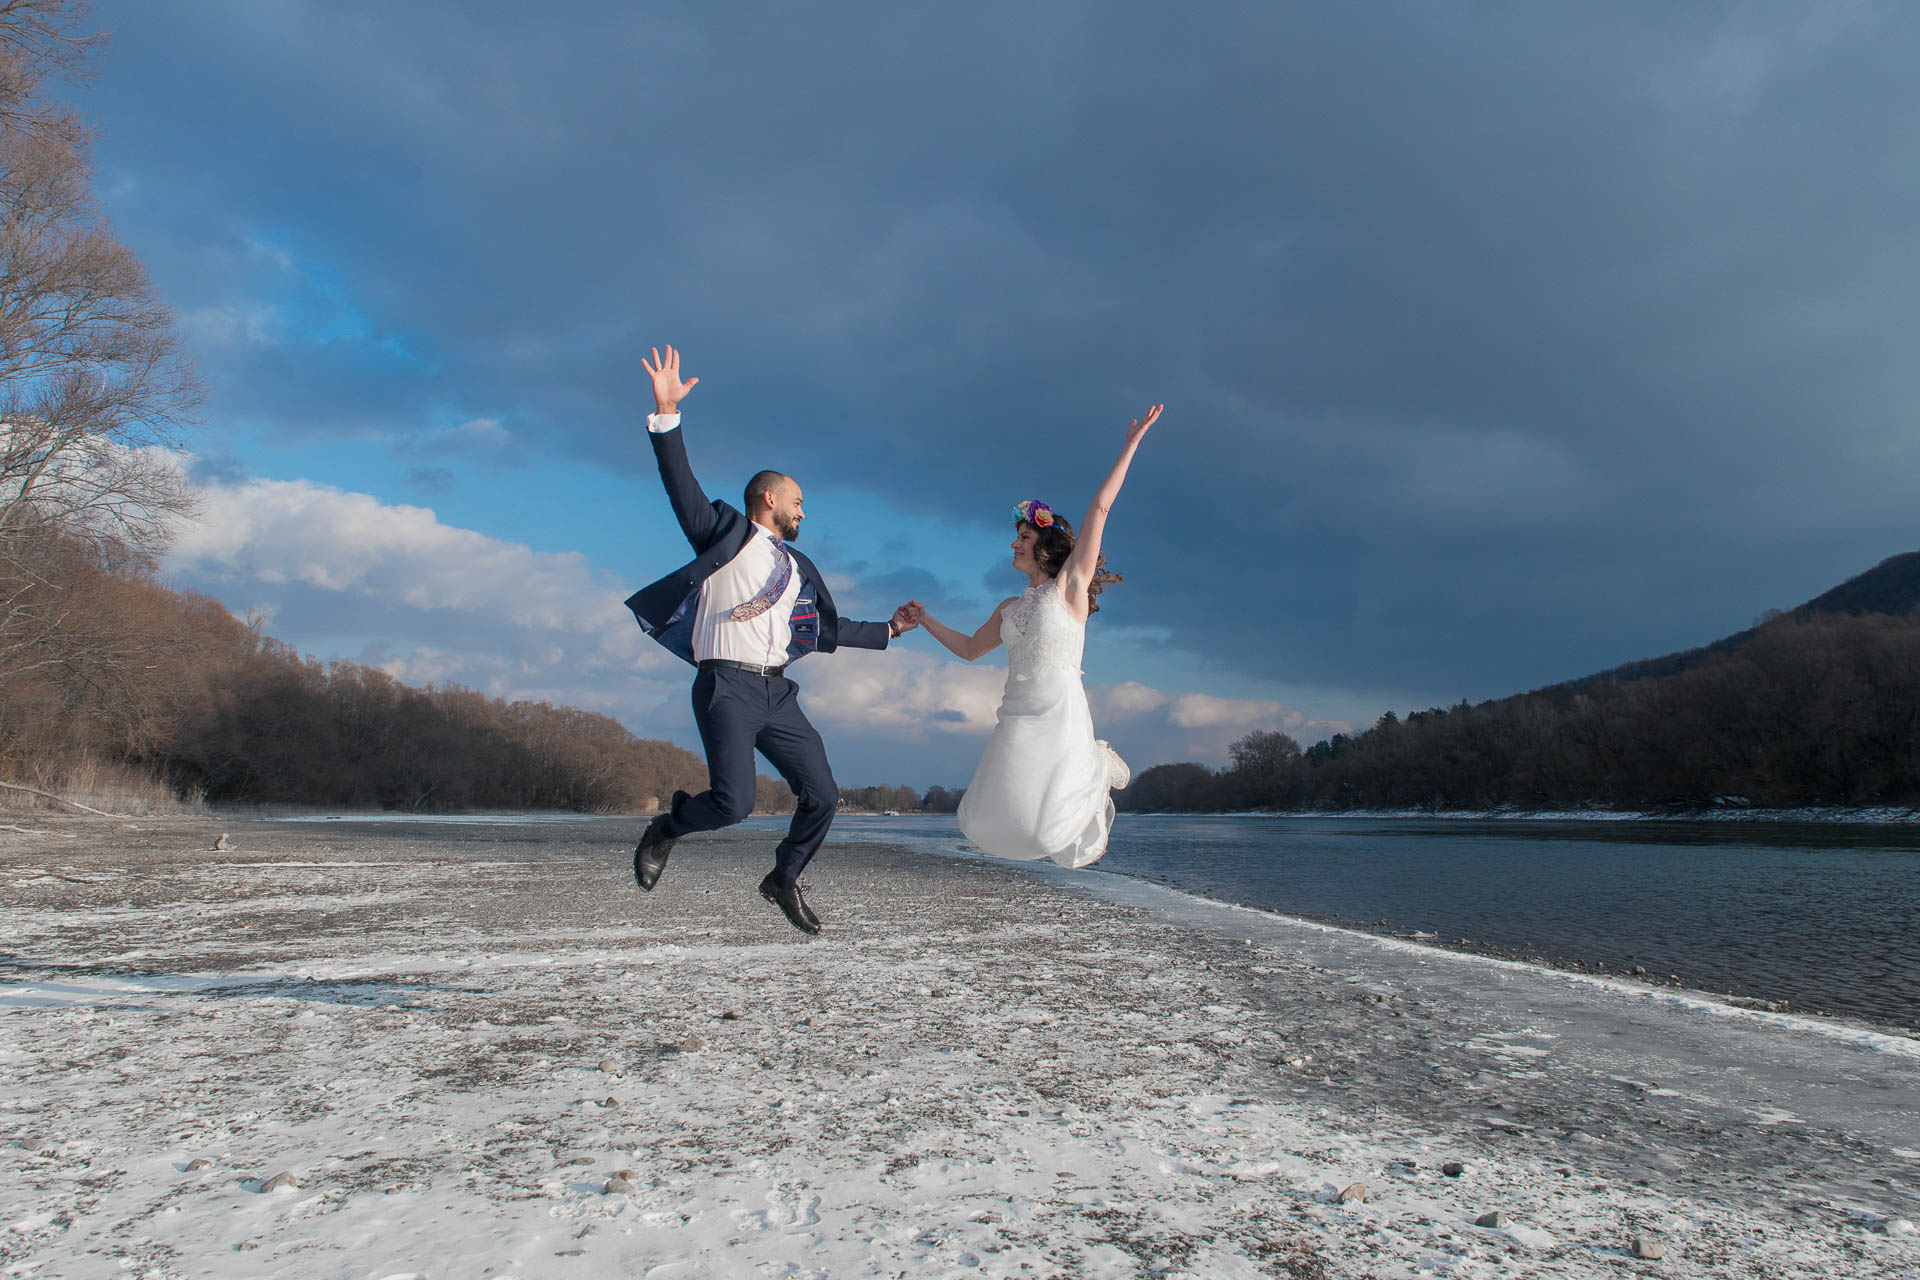 Adventure wedding in Hungary - hiking and kayaking - wedding couple jumping in joy at riverside